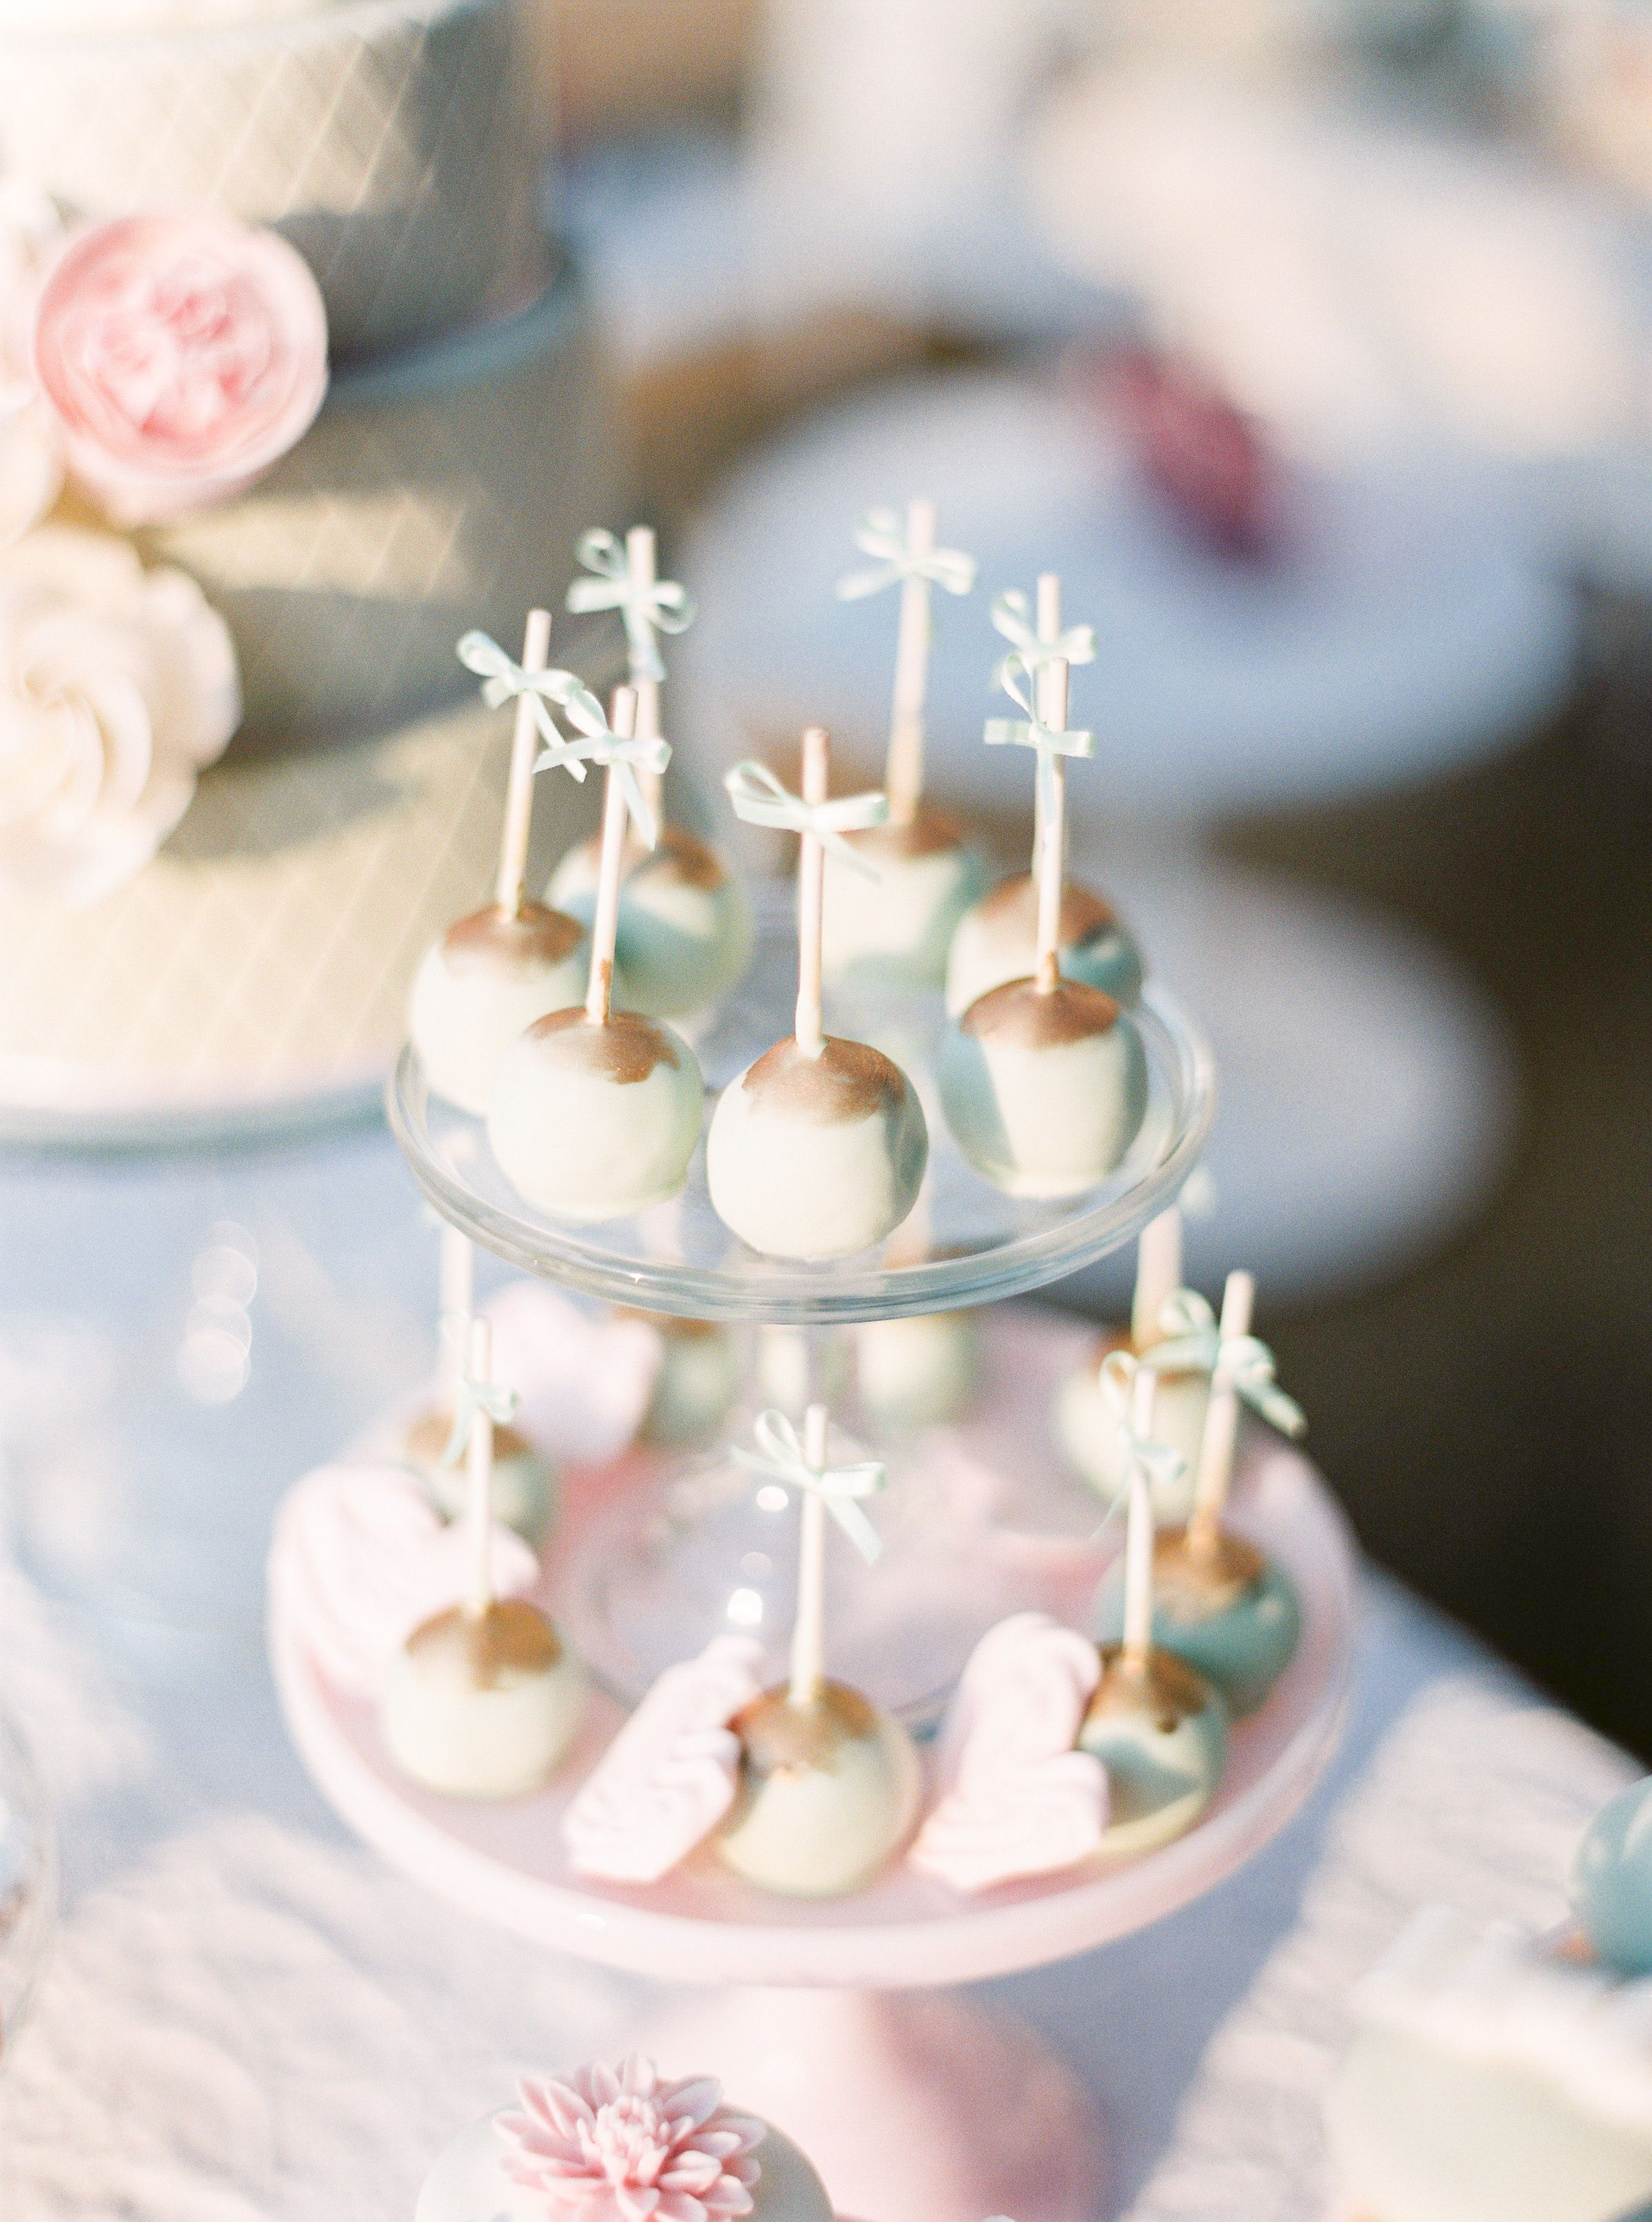 Cake pops by cupcake decor by the wedding company portugal photo